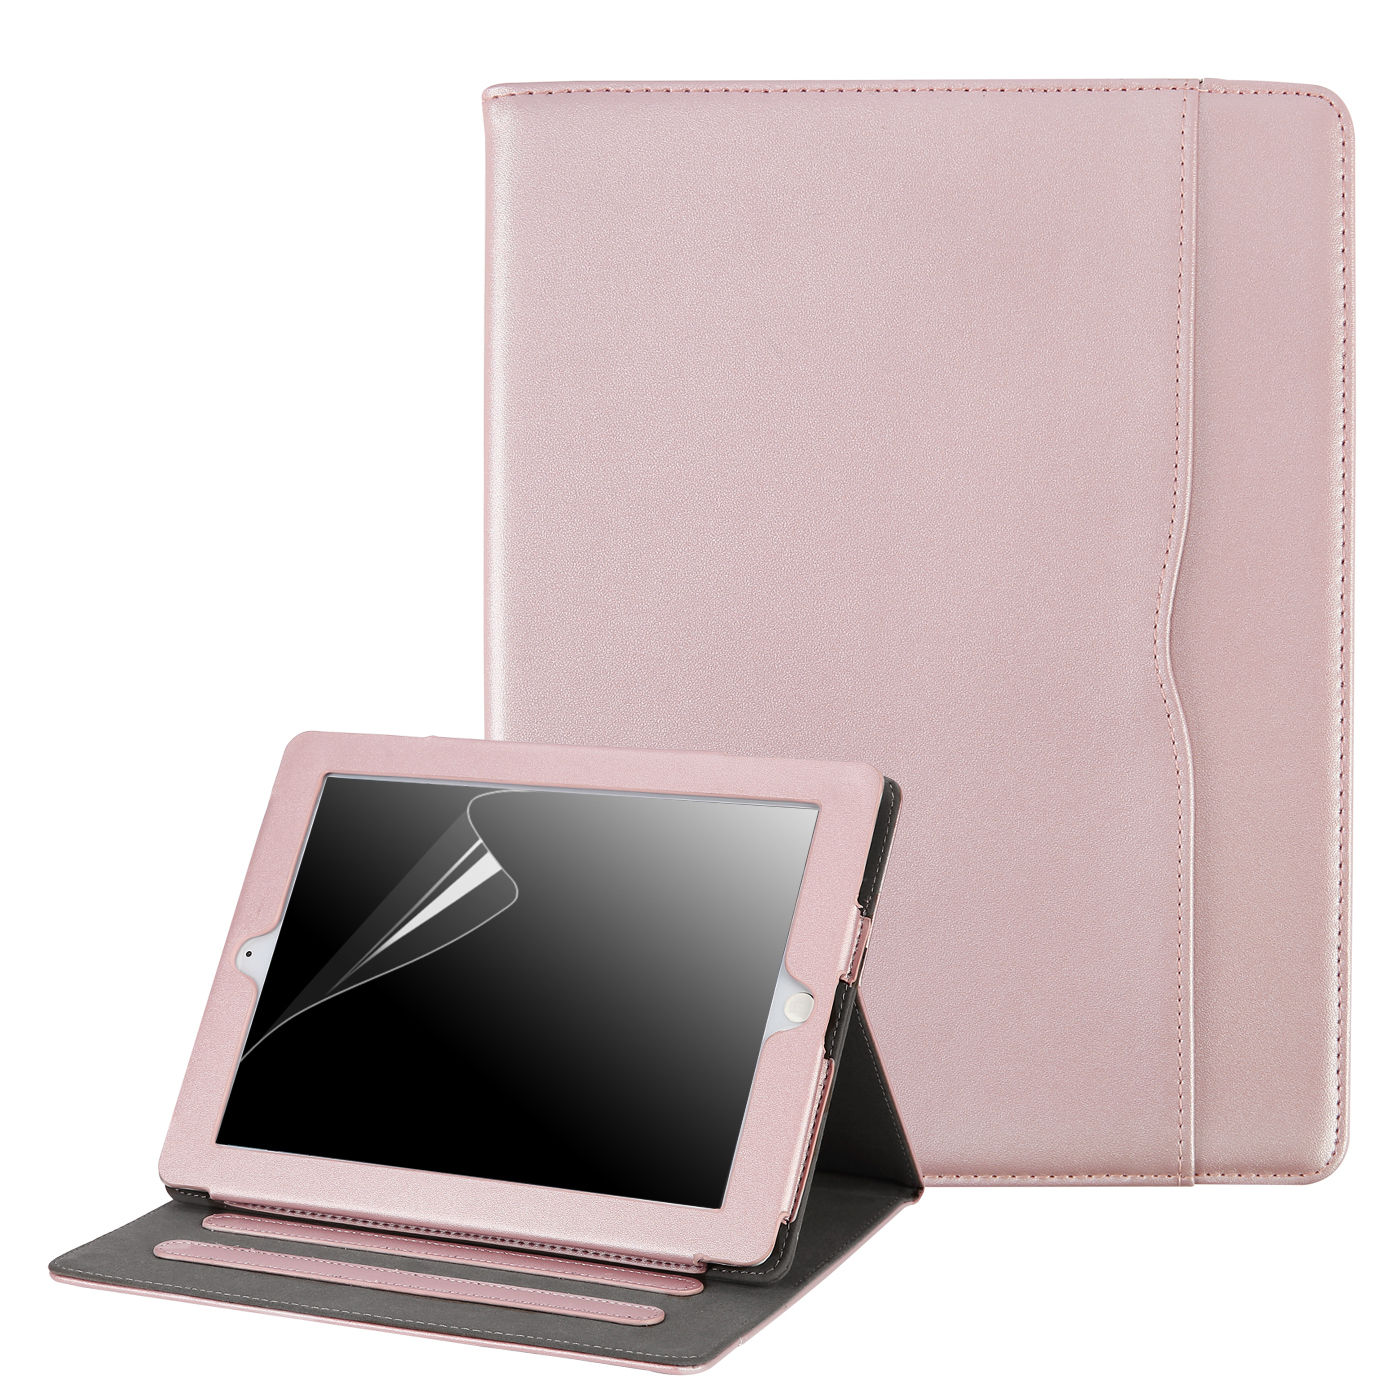 HDE iPad 2 3 4 Case Slim Fit Leather Folio Cover Magnetic Closure Auto Sleep Wake Flip Stand for Apple iPad 2nd 3rd 4th Generation (Purple)